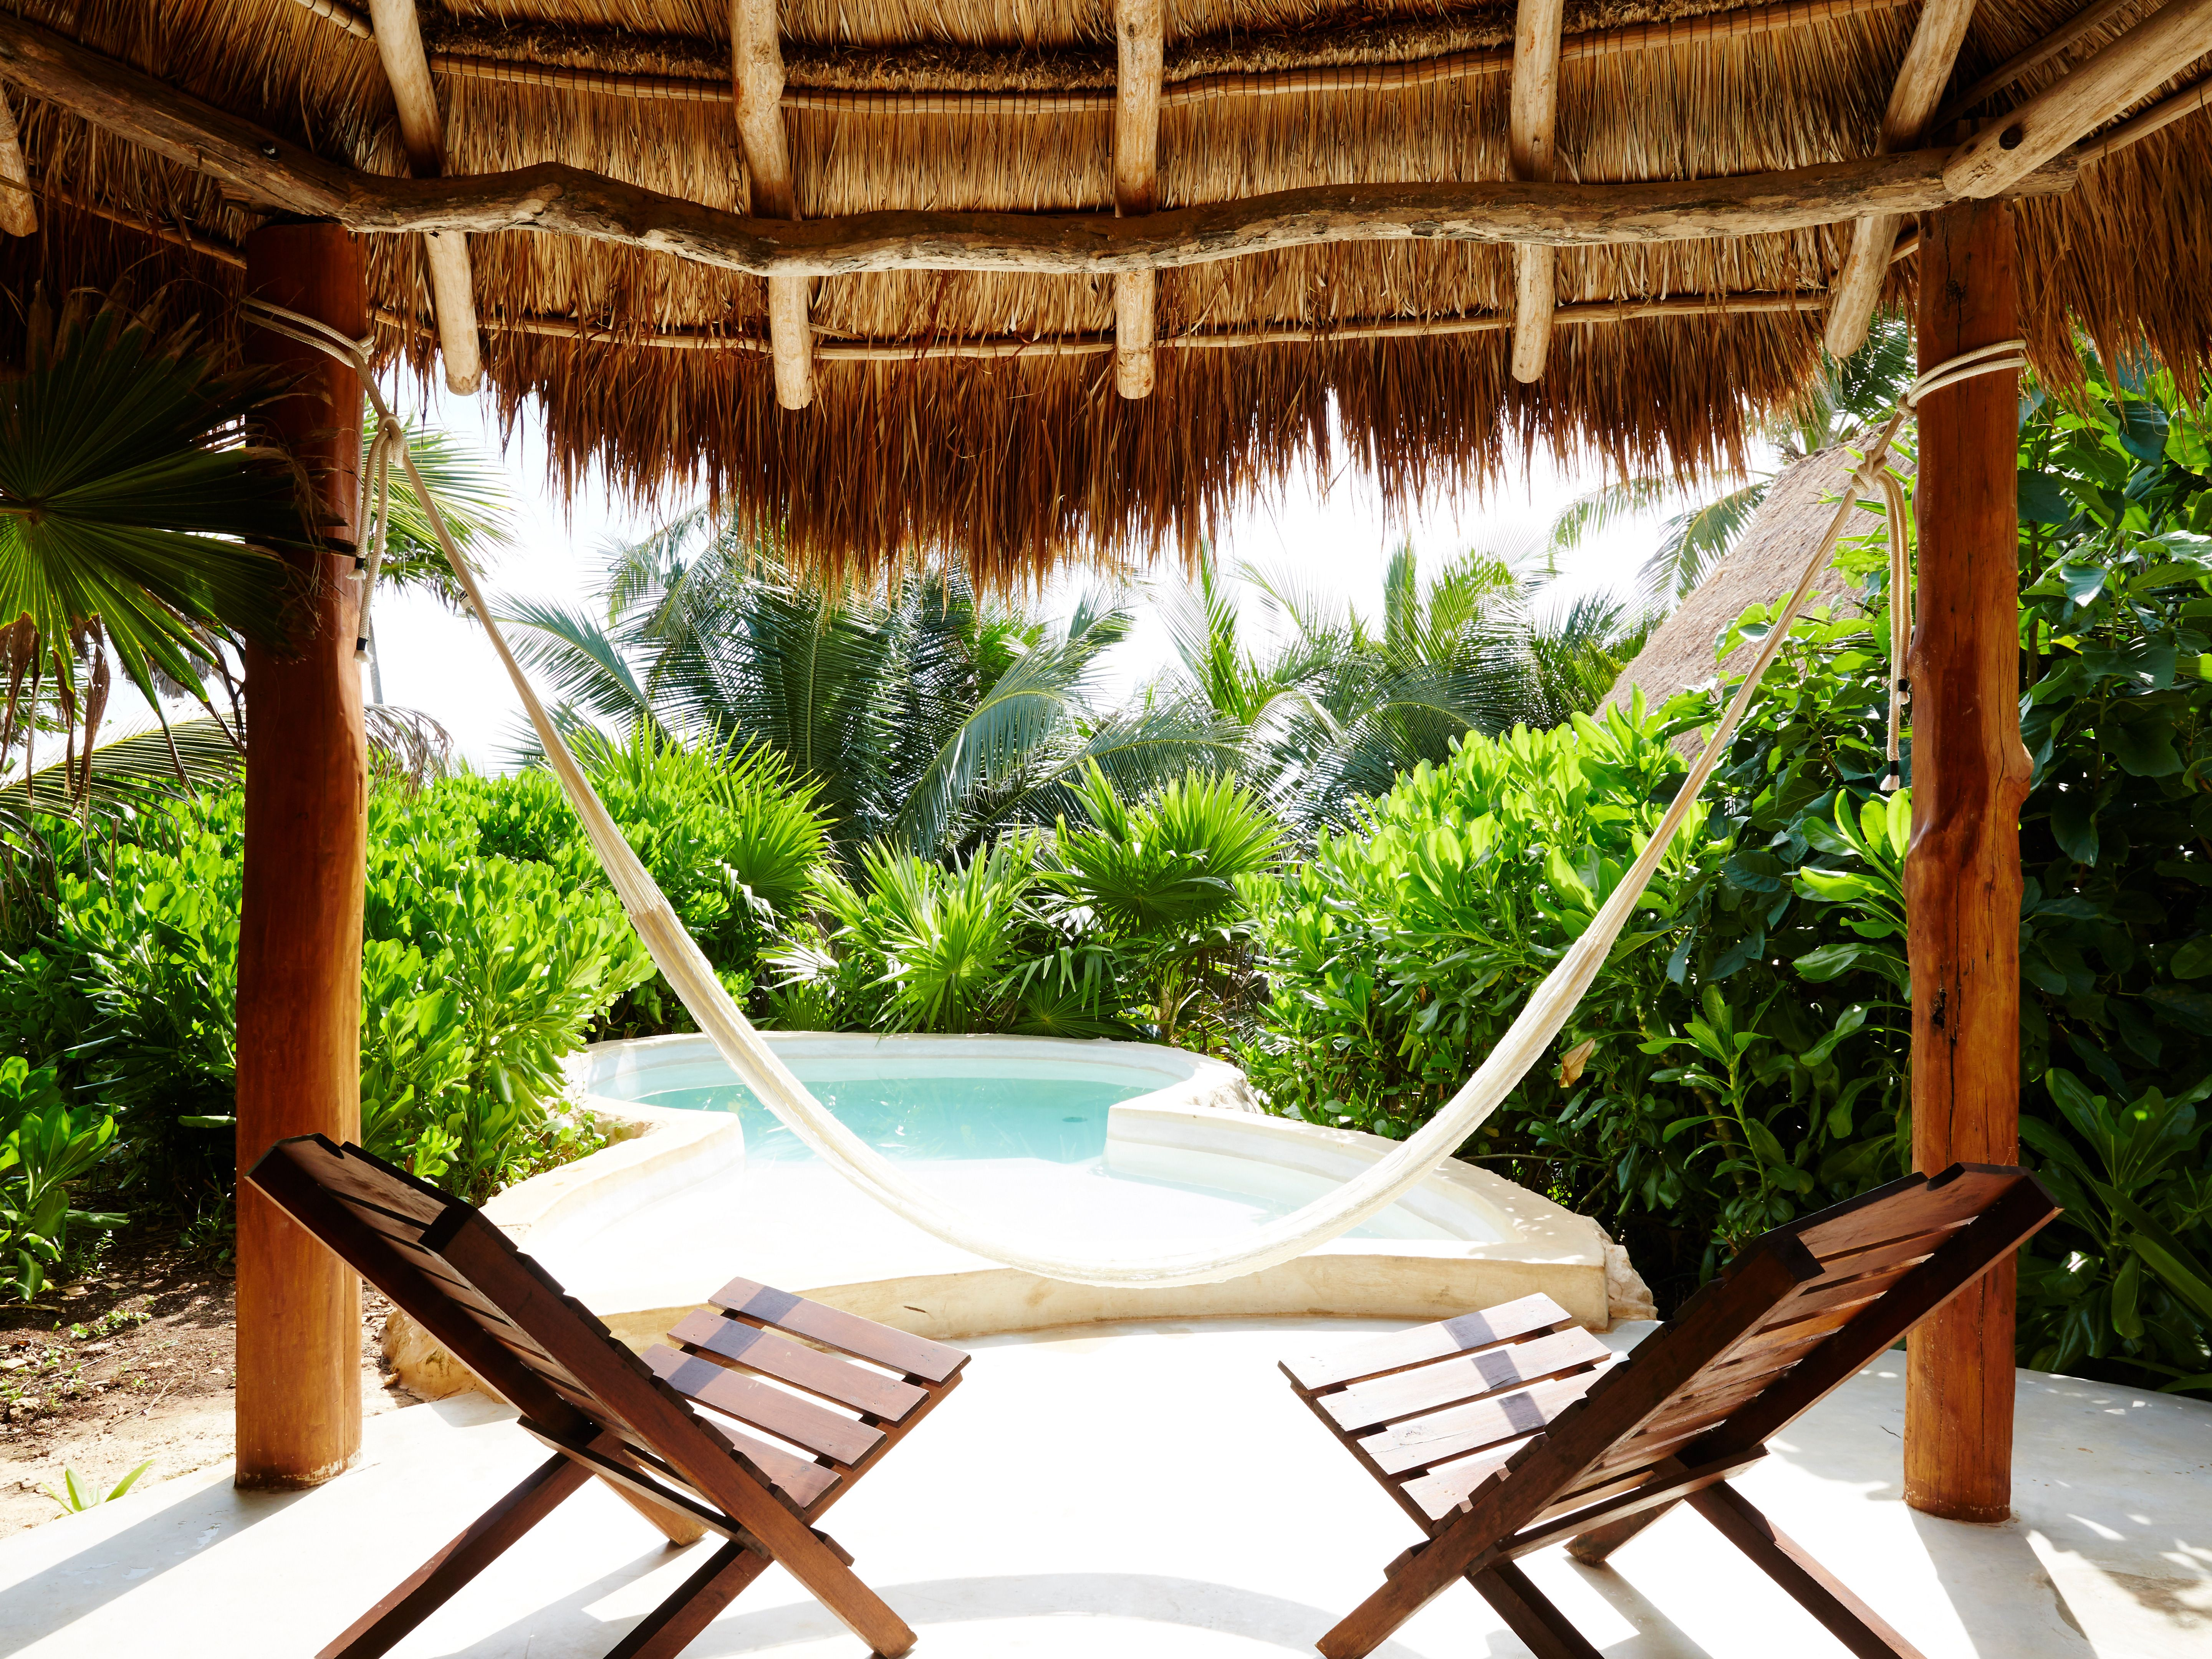 Rooms & Suites at Papaya Playa in Tulum, Mexico - Design Hotels™